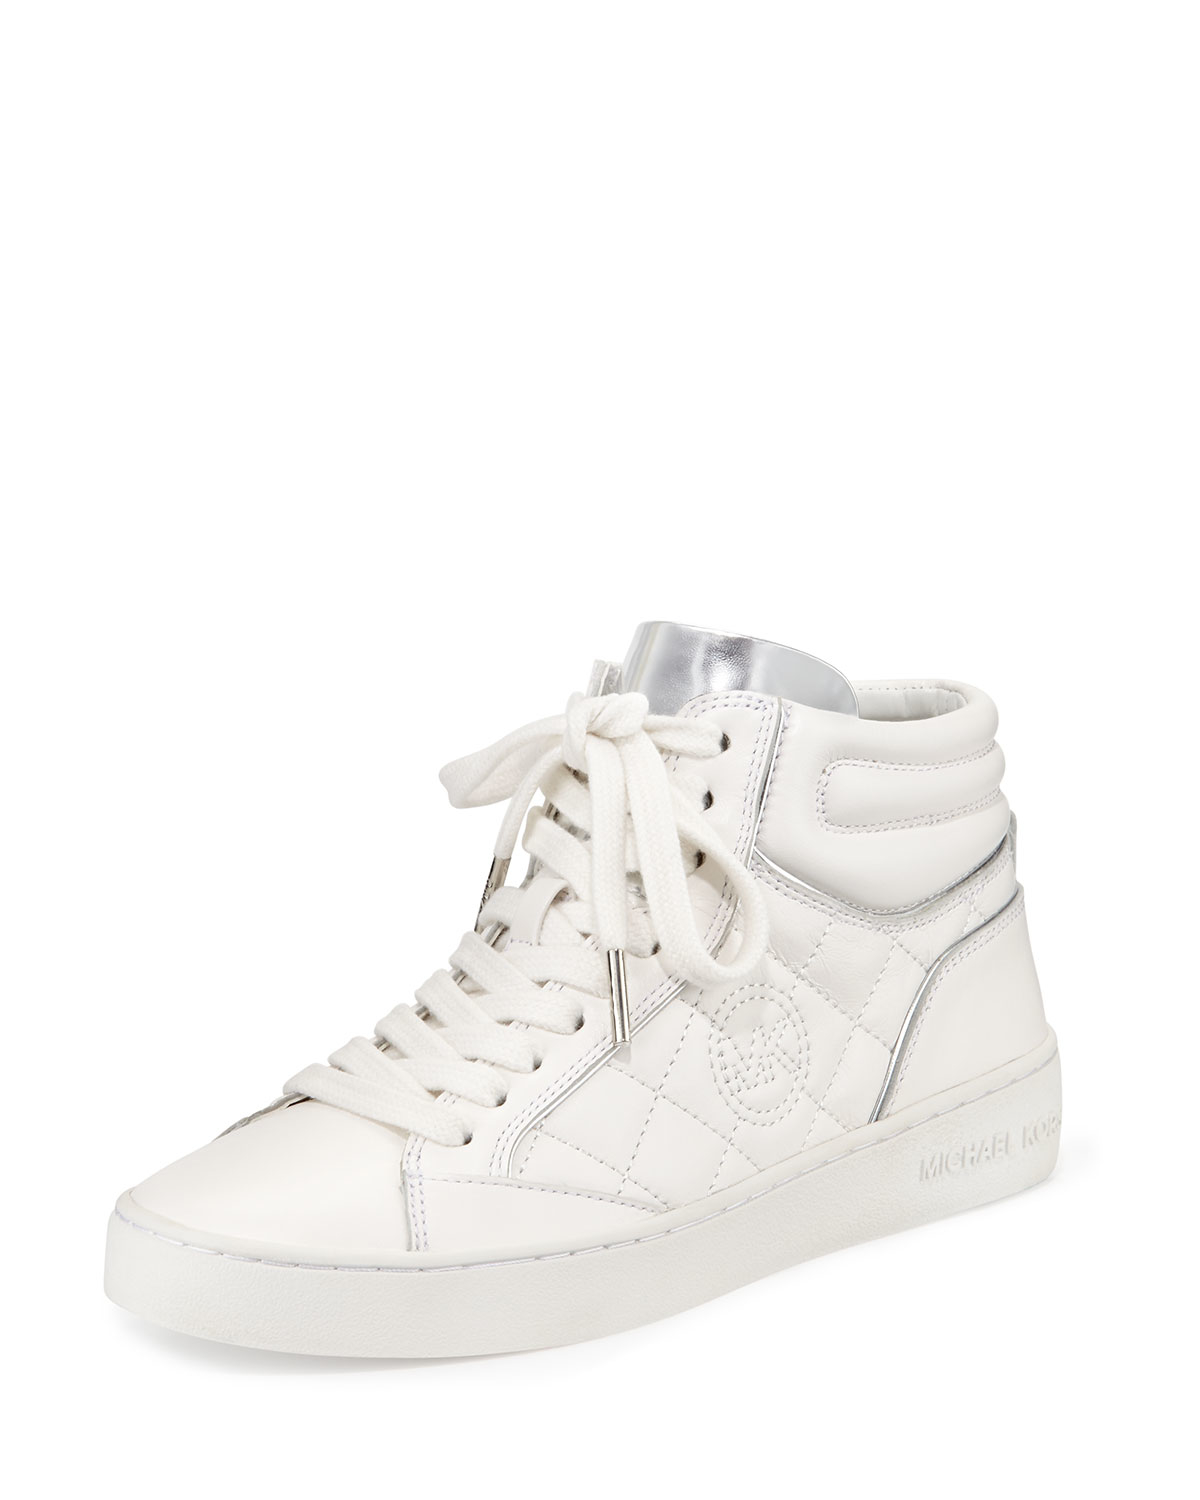 michael michael kors paige quilted high top sneaker in white lyst. Black Bedroom Furniture Sets. Home Design Ideas